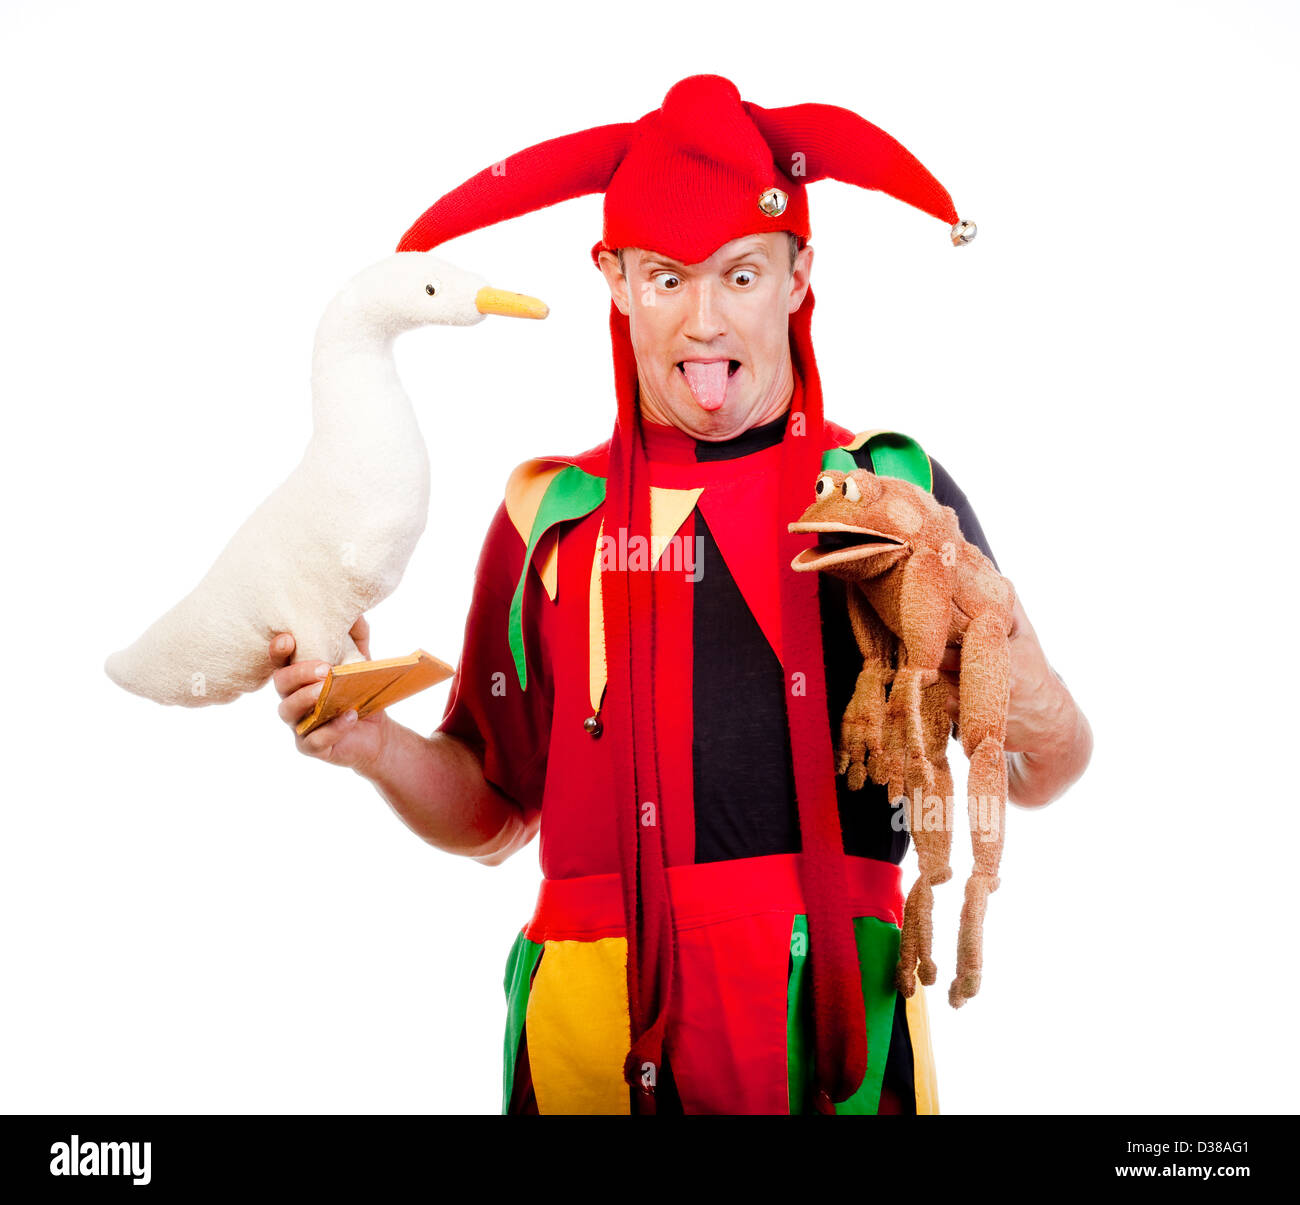 jester - entertaining figure in typical costume with puppets - Stock Image